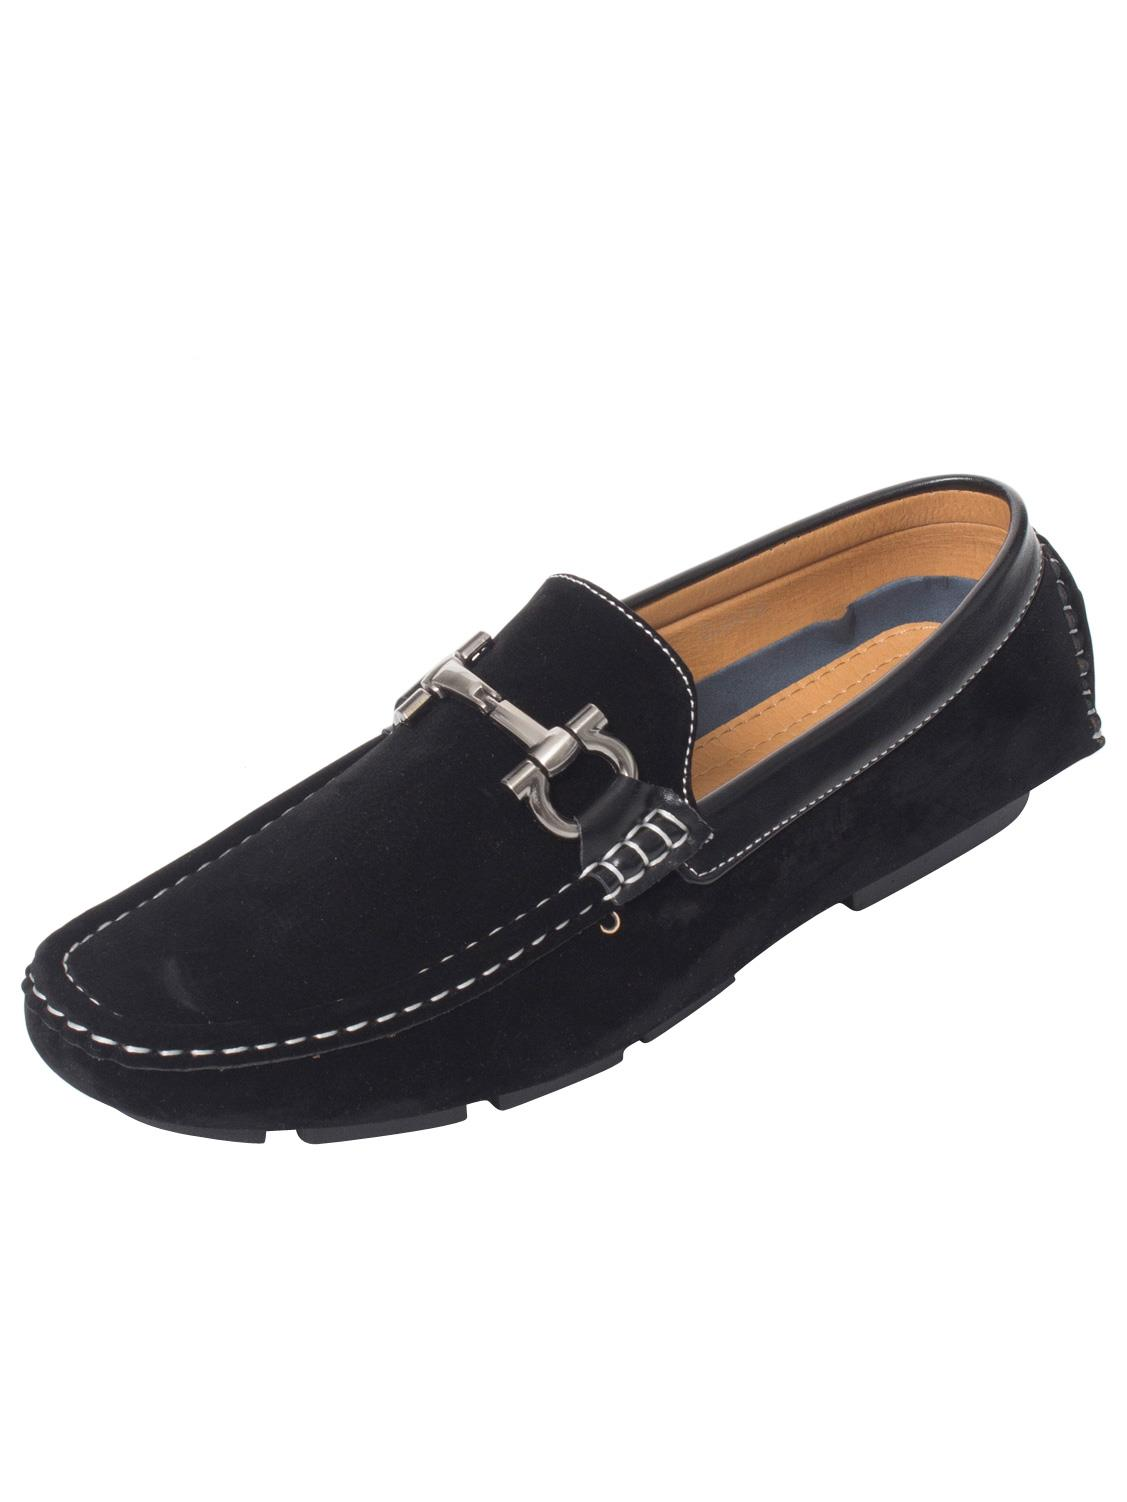 Mens-Slip-Ons-Shoes-Boat-Deck-Driving-Smart-Buckle-Moccasins-Suede-Look-Loafers thumbnail 70